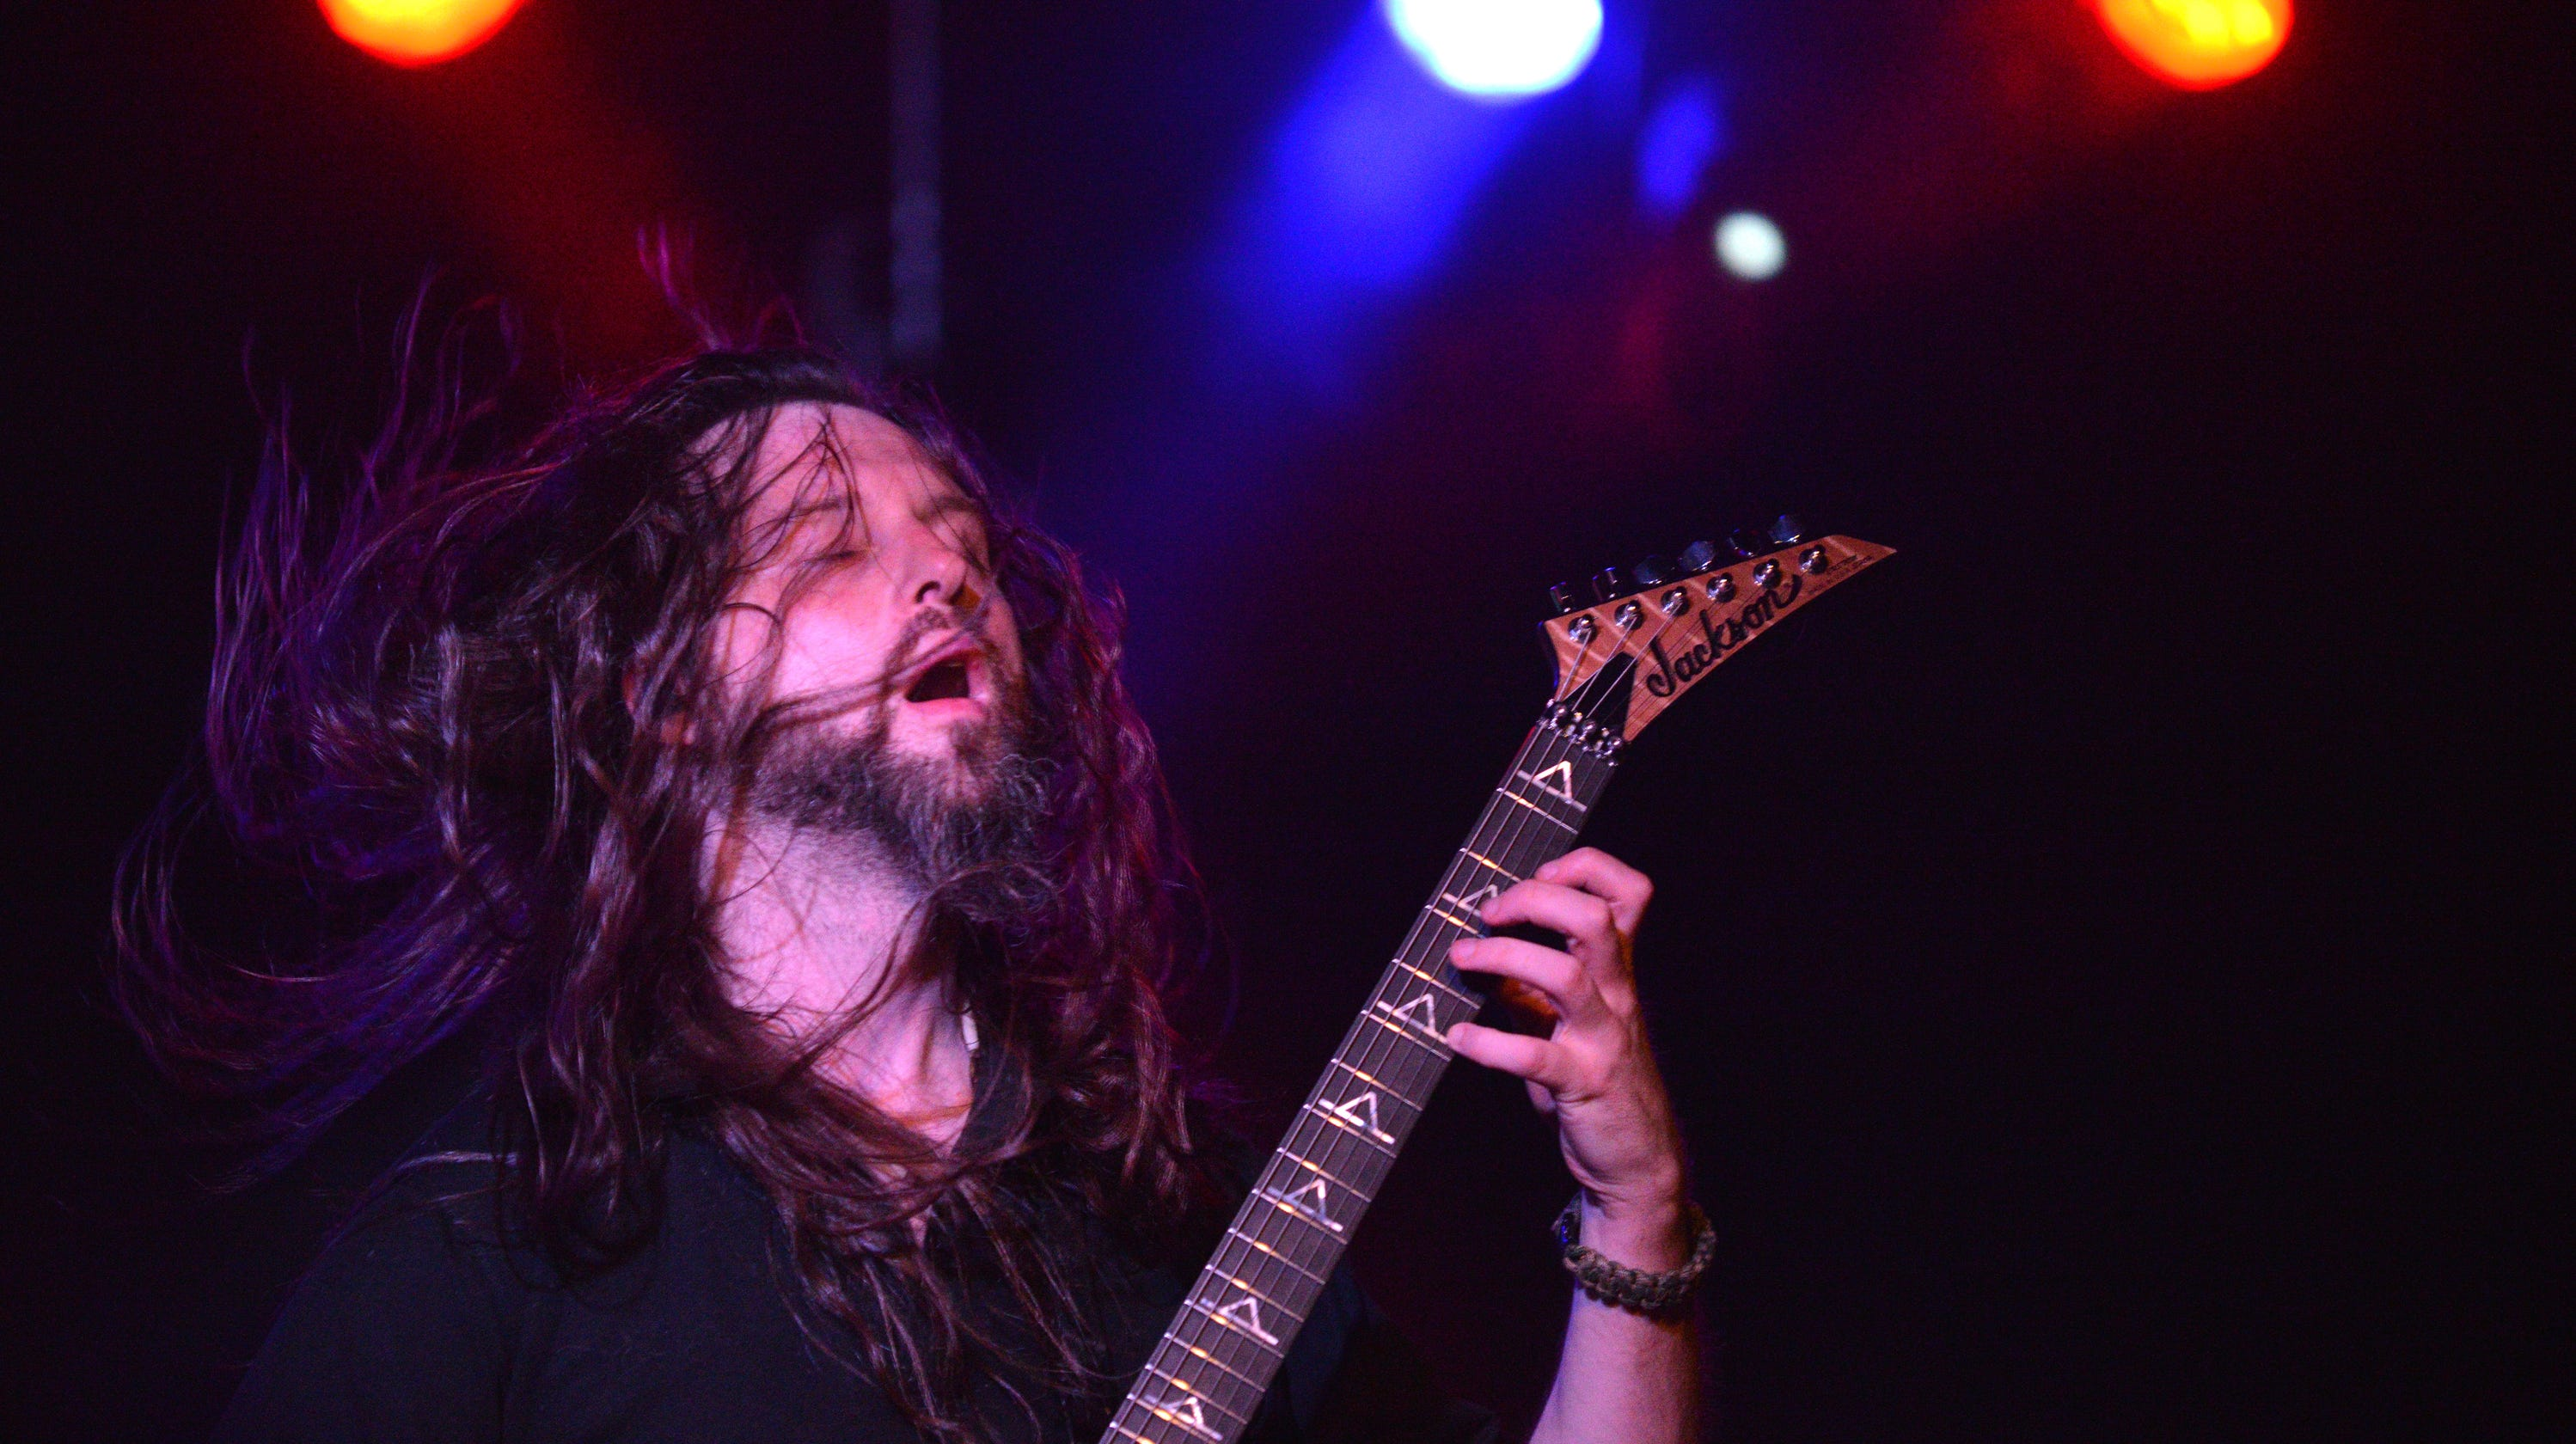 All That Remains Of St Raphaels >> Oli Herbet All That Remains Guitarist Dead At 44